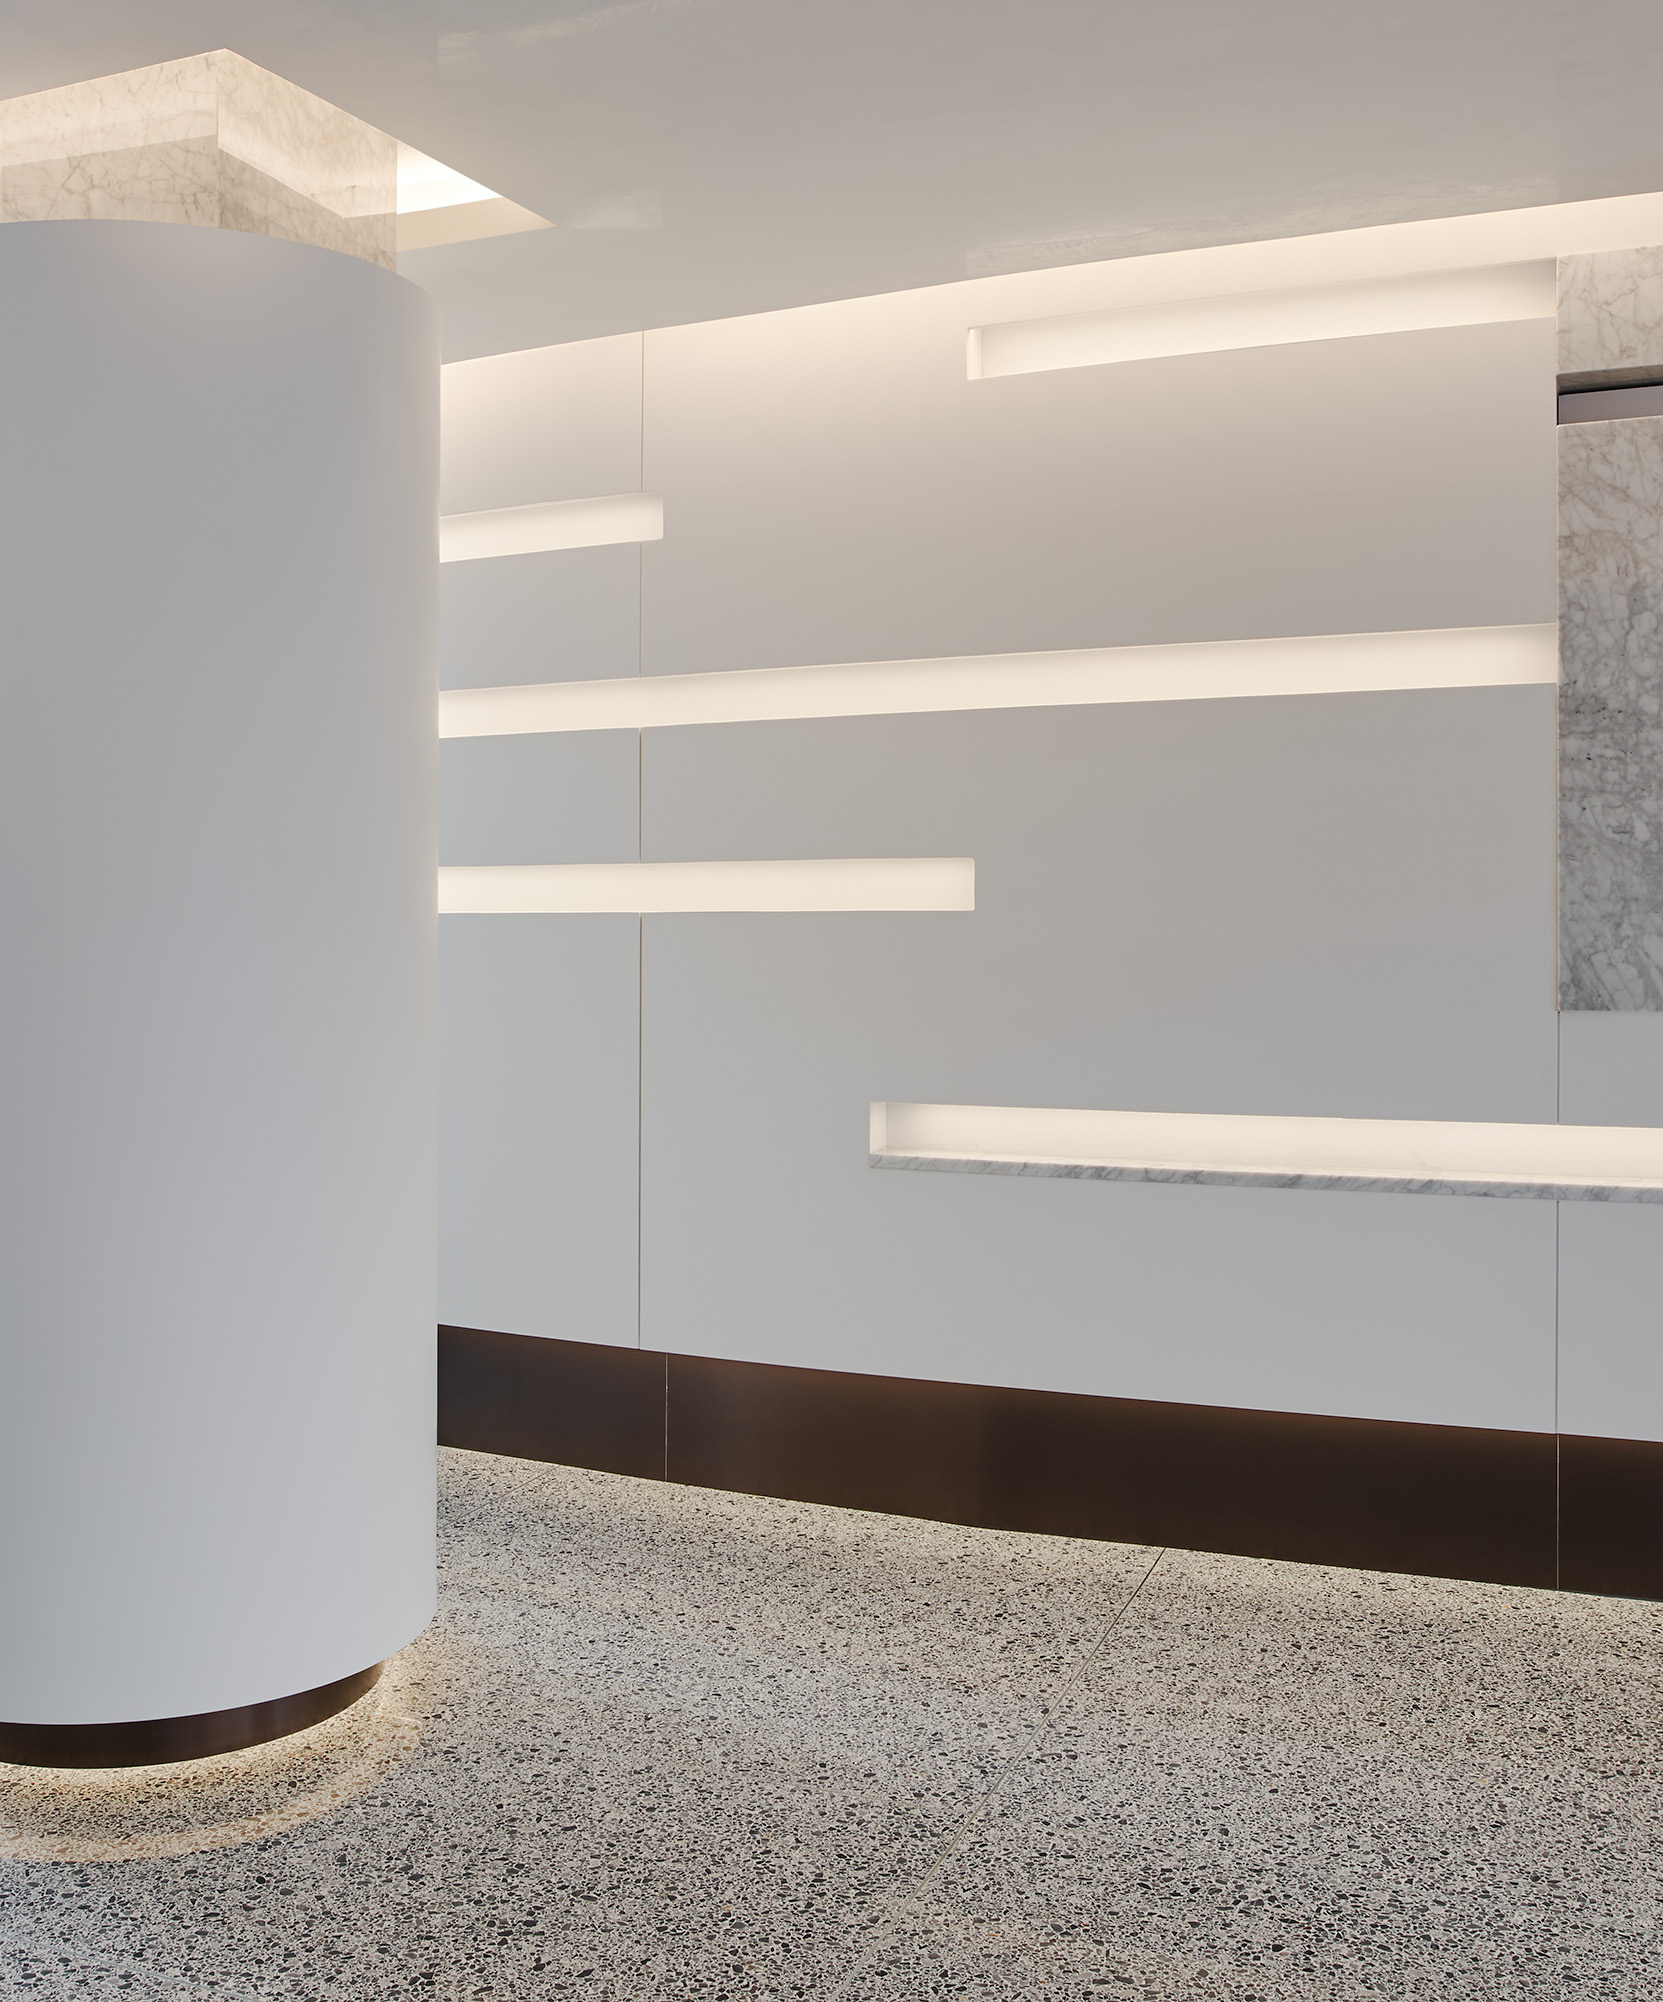 Watergate_Lobby_McInturff_Architects_1_Anice.jpg